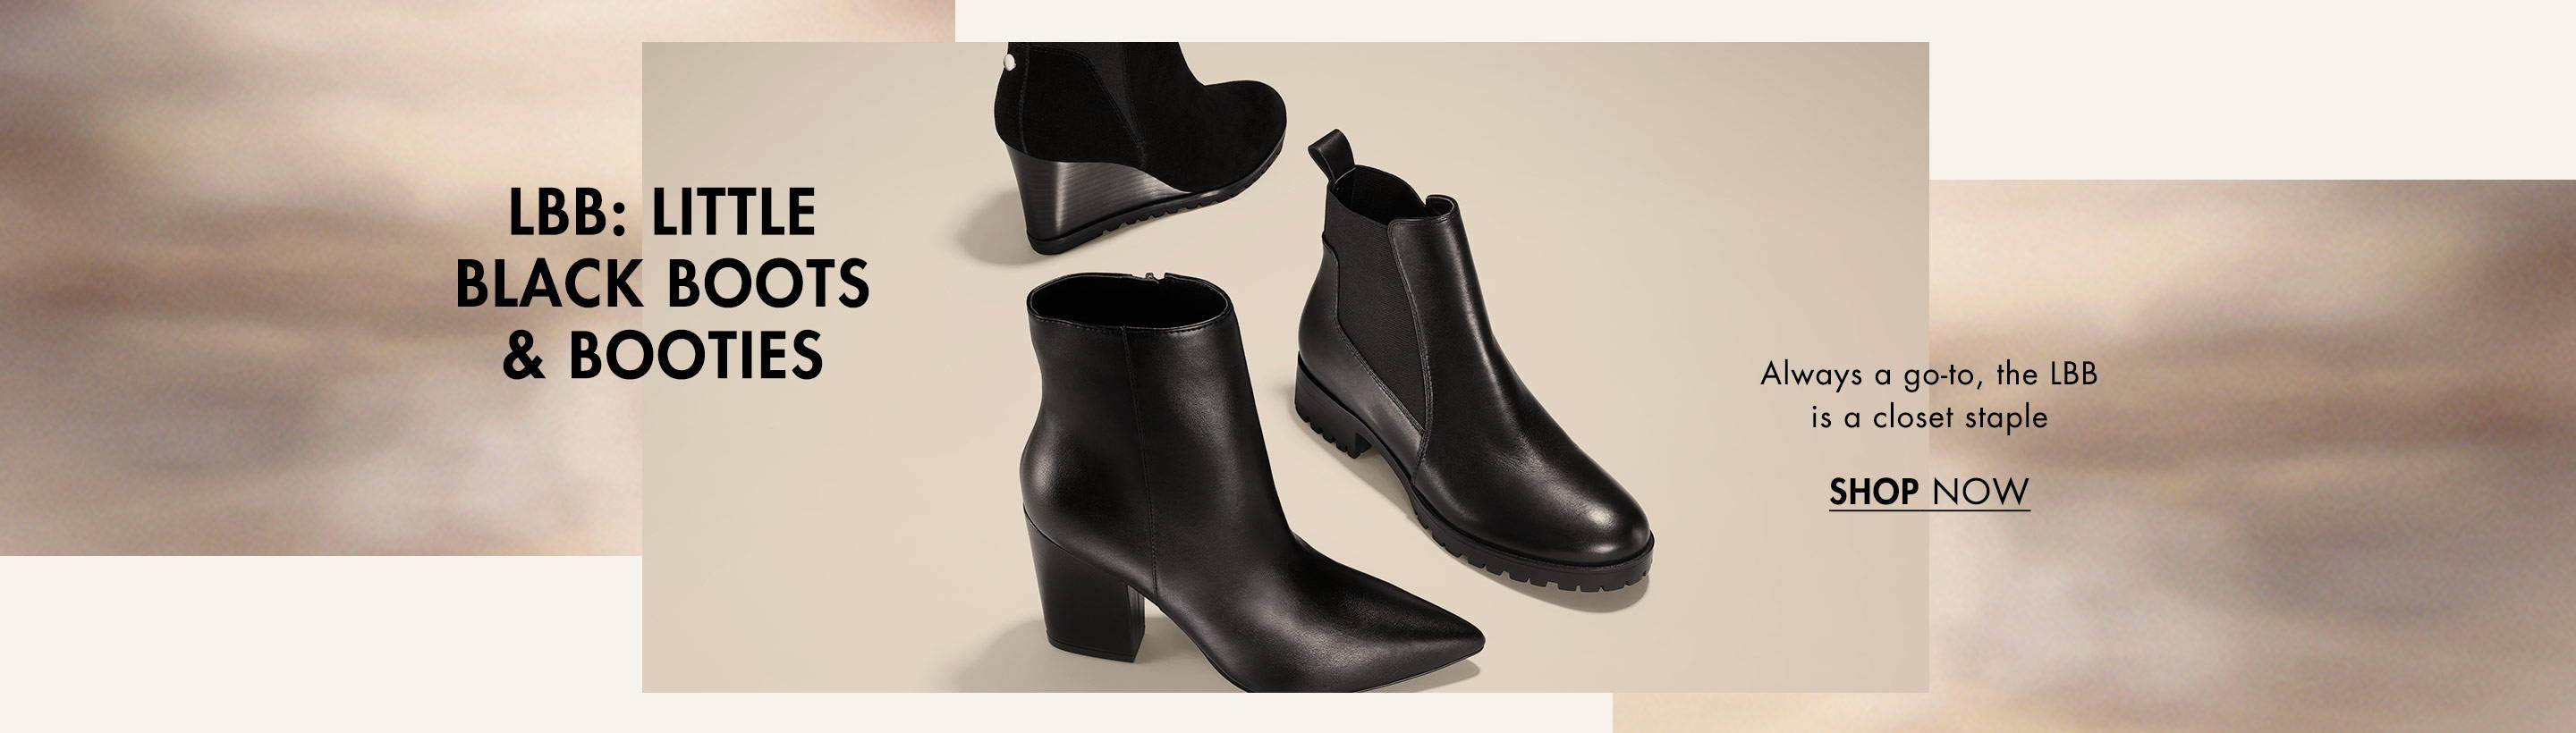 Shop Little Black Boots & Booties